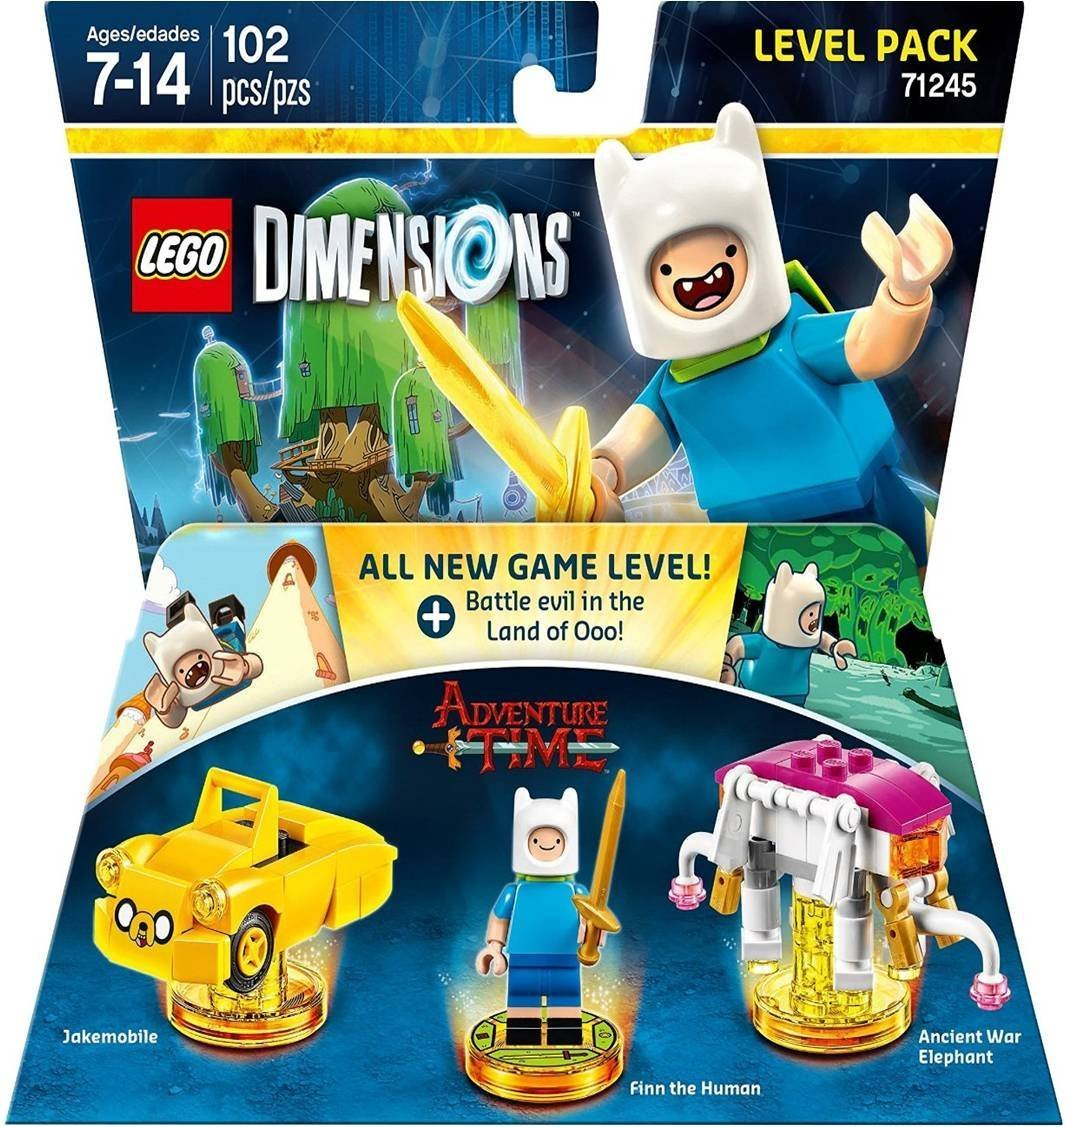 Ninjago Cole & Kai Team Pack + Adventure Time Finn The Human Level Pack + Scooby Doo Team Pack - Lego Dimensions (Non Machine Specific) by WB Lego (Image #7)